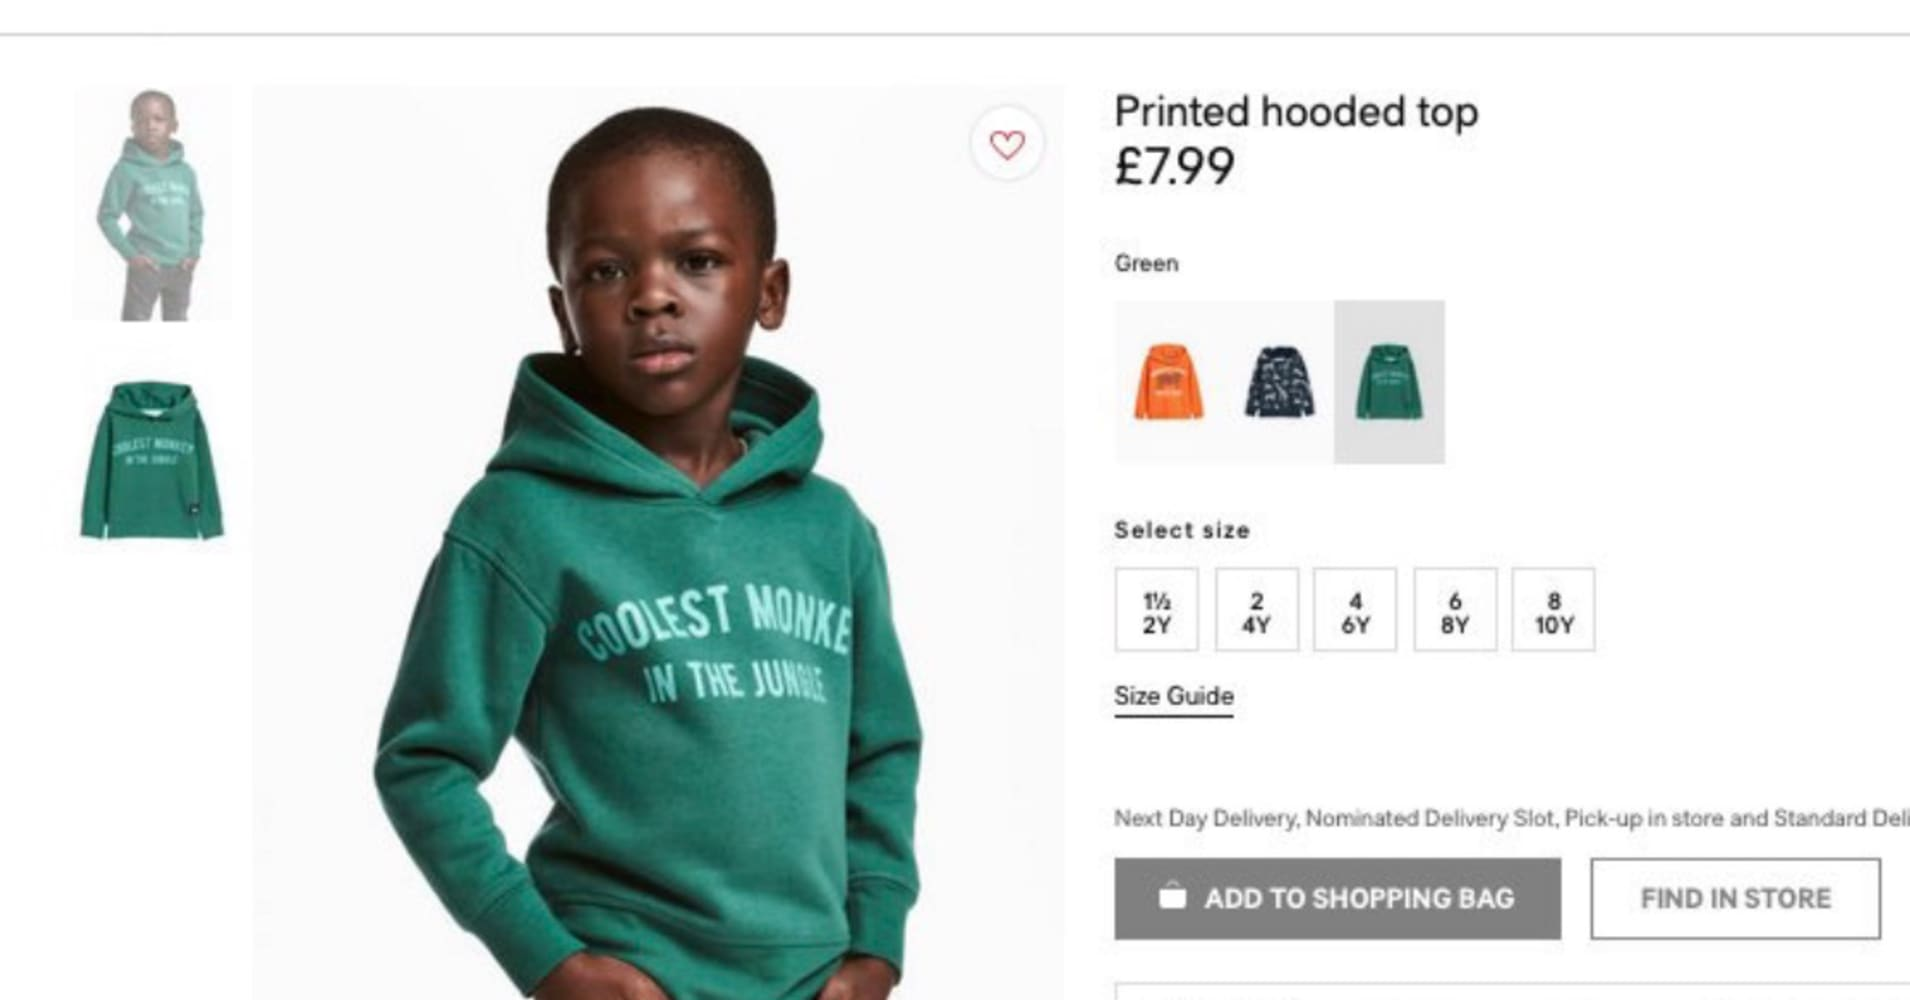 556ca28a H&M slammed as racist for 'monkey in the jungle' hoodie